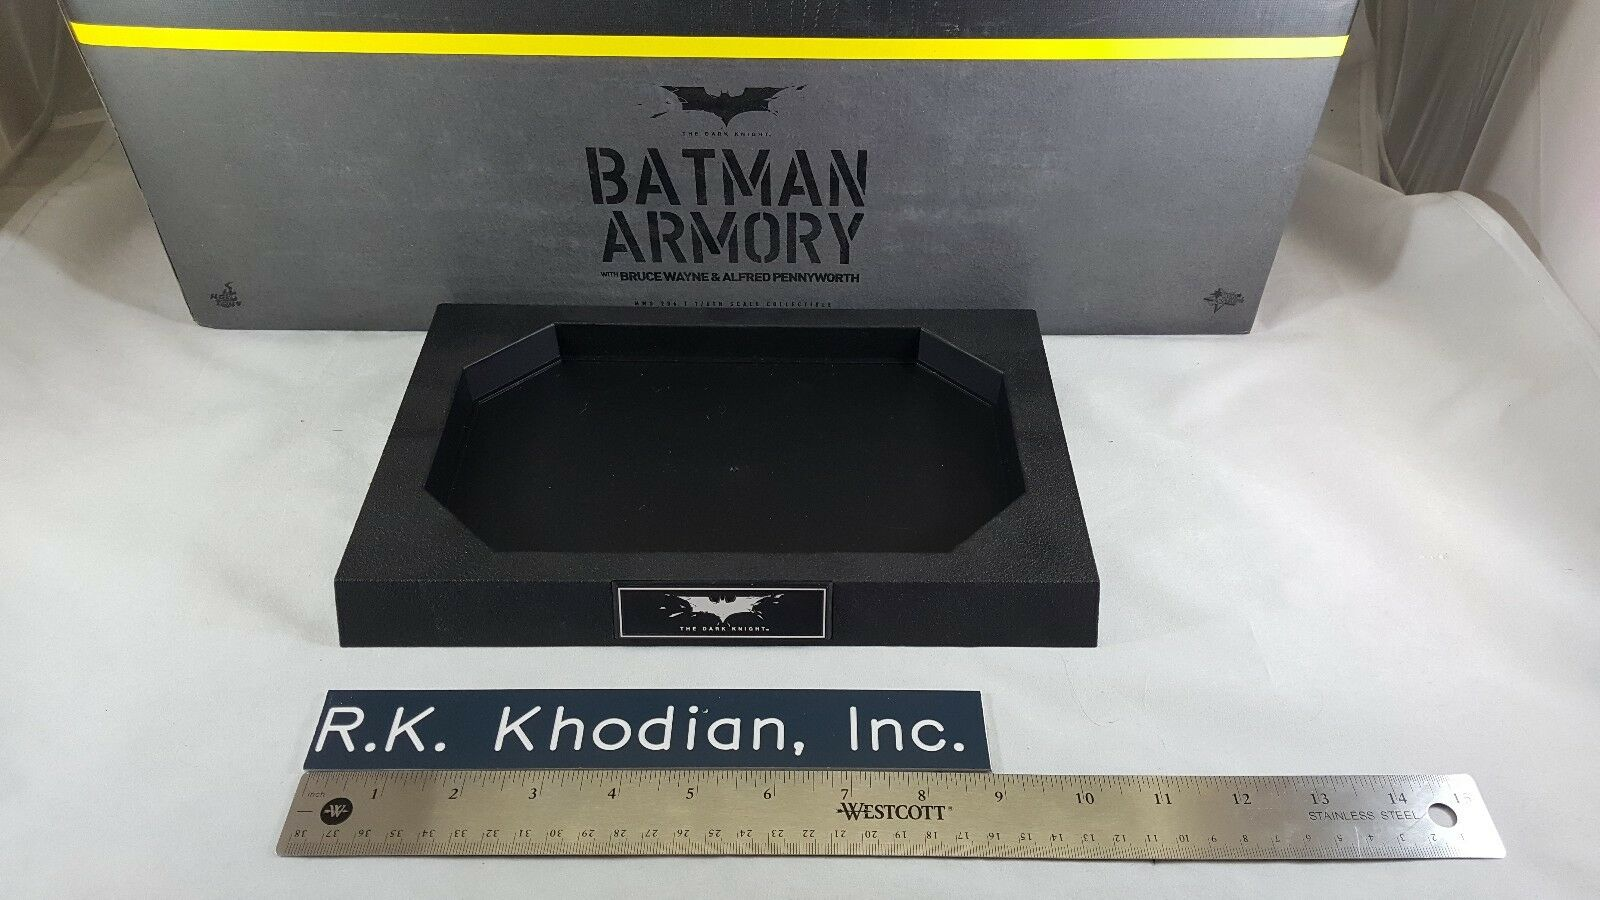 Hot Toys 1 6 6 6 scale empty Armory Base only from Batman TDKR Armory set MMS236 b5c694